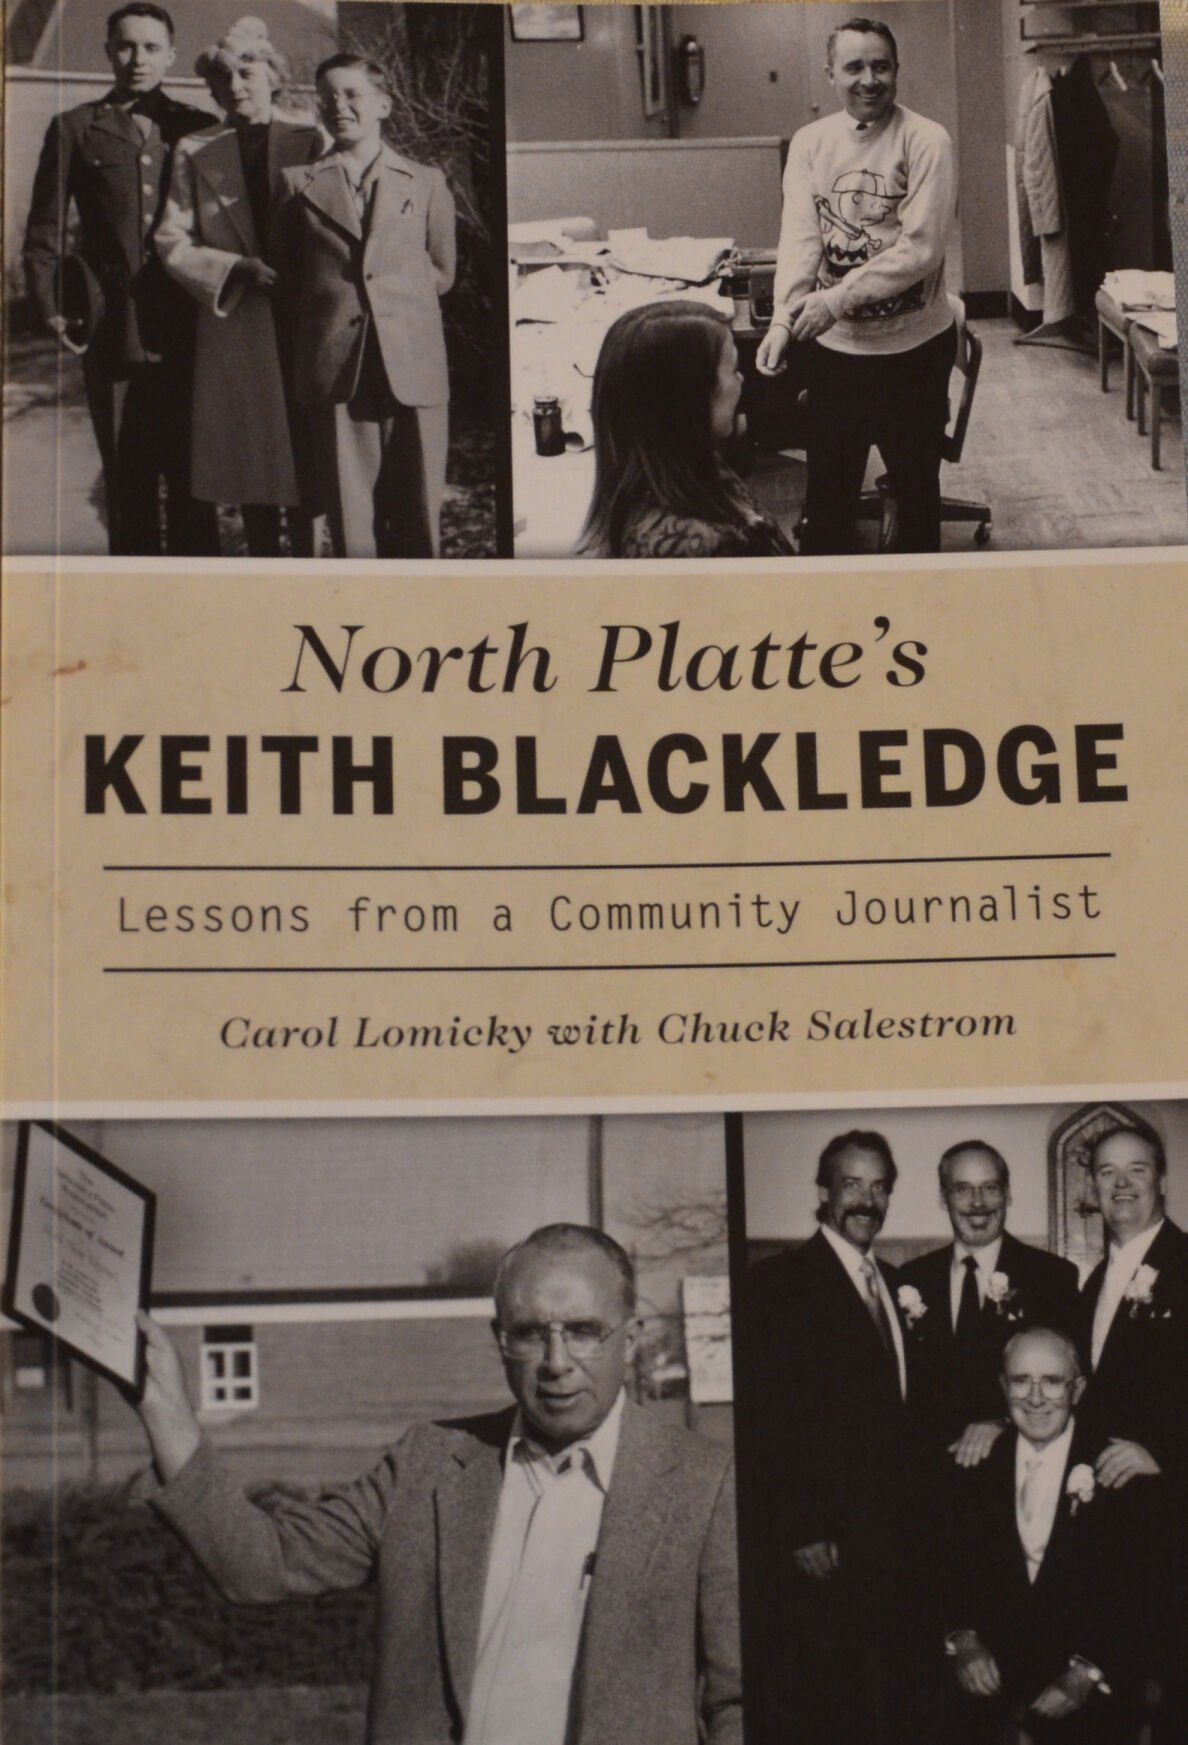 """North Platte's Keith Blackledge: Lessons from a Community Journalist"""